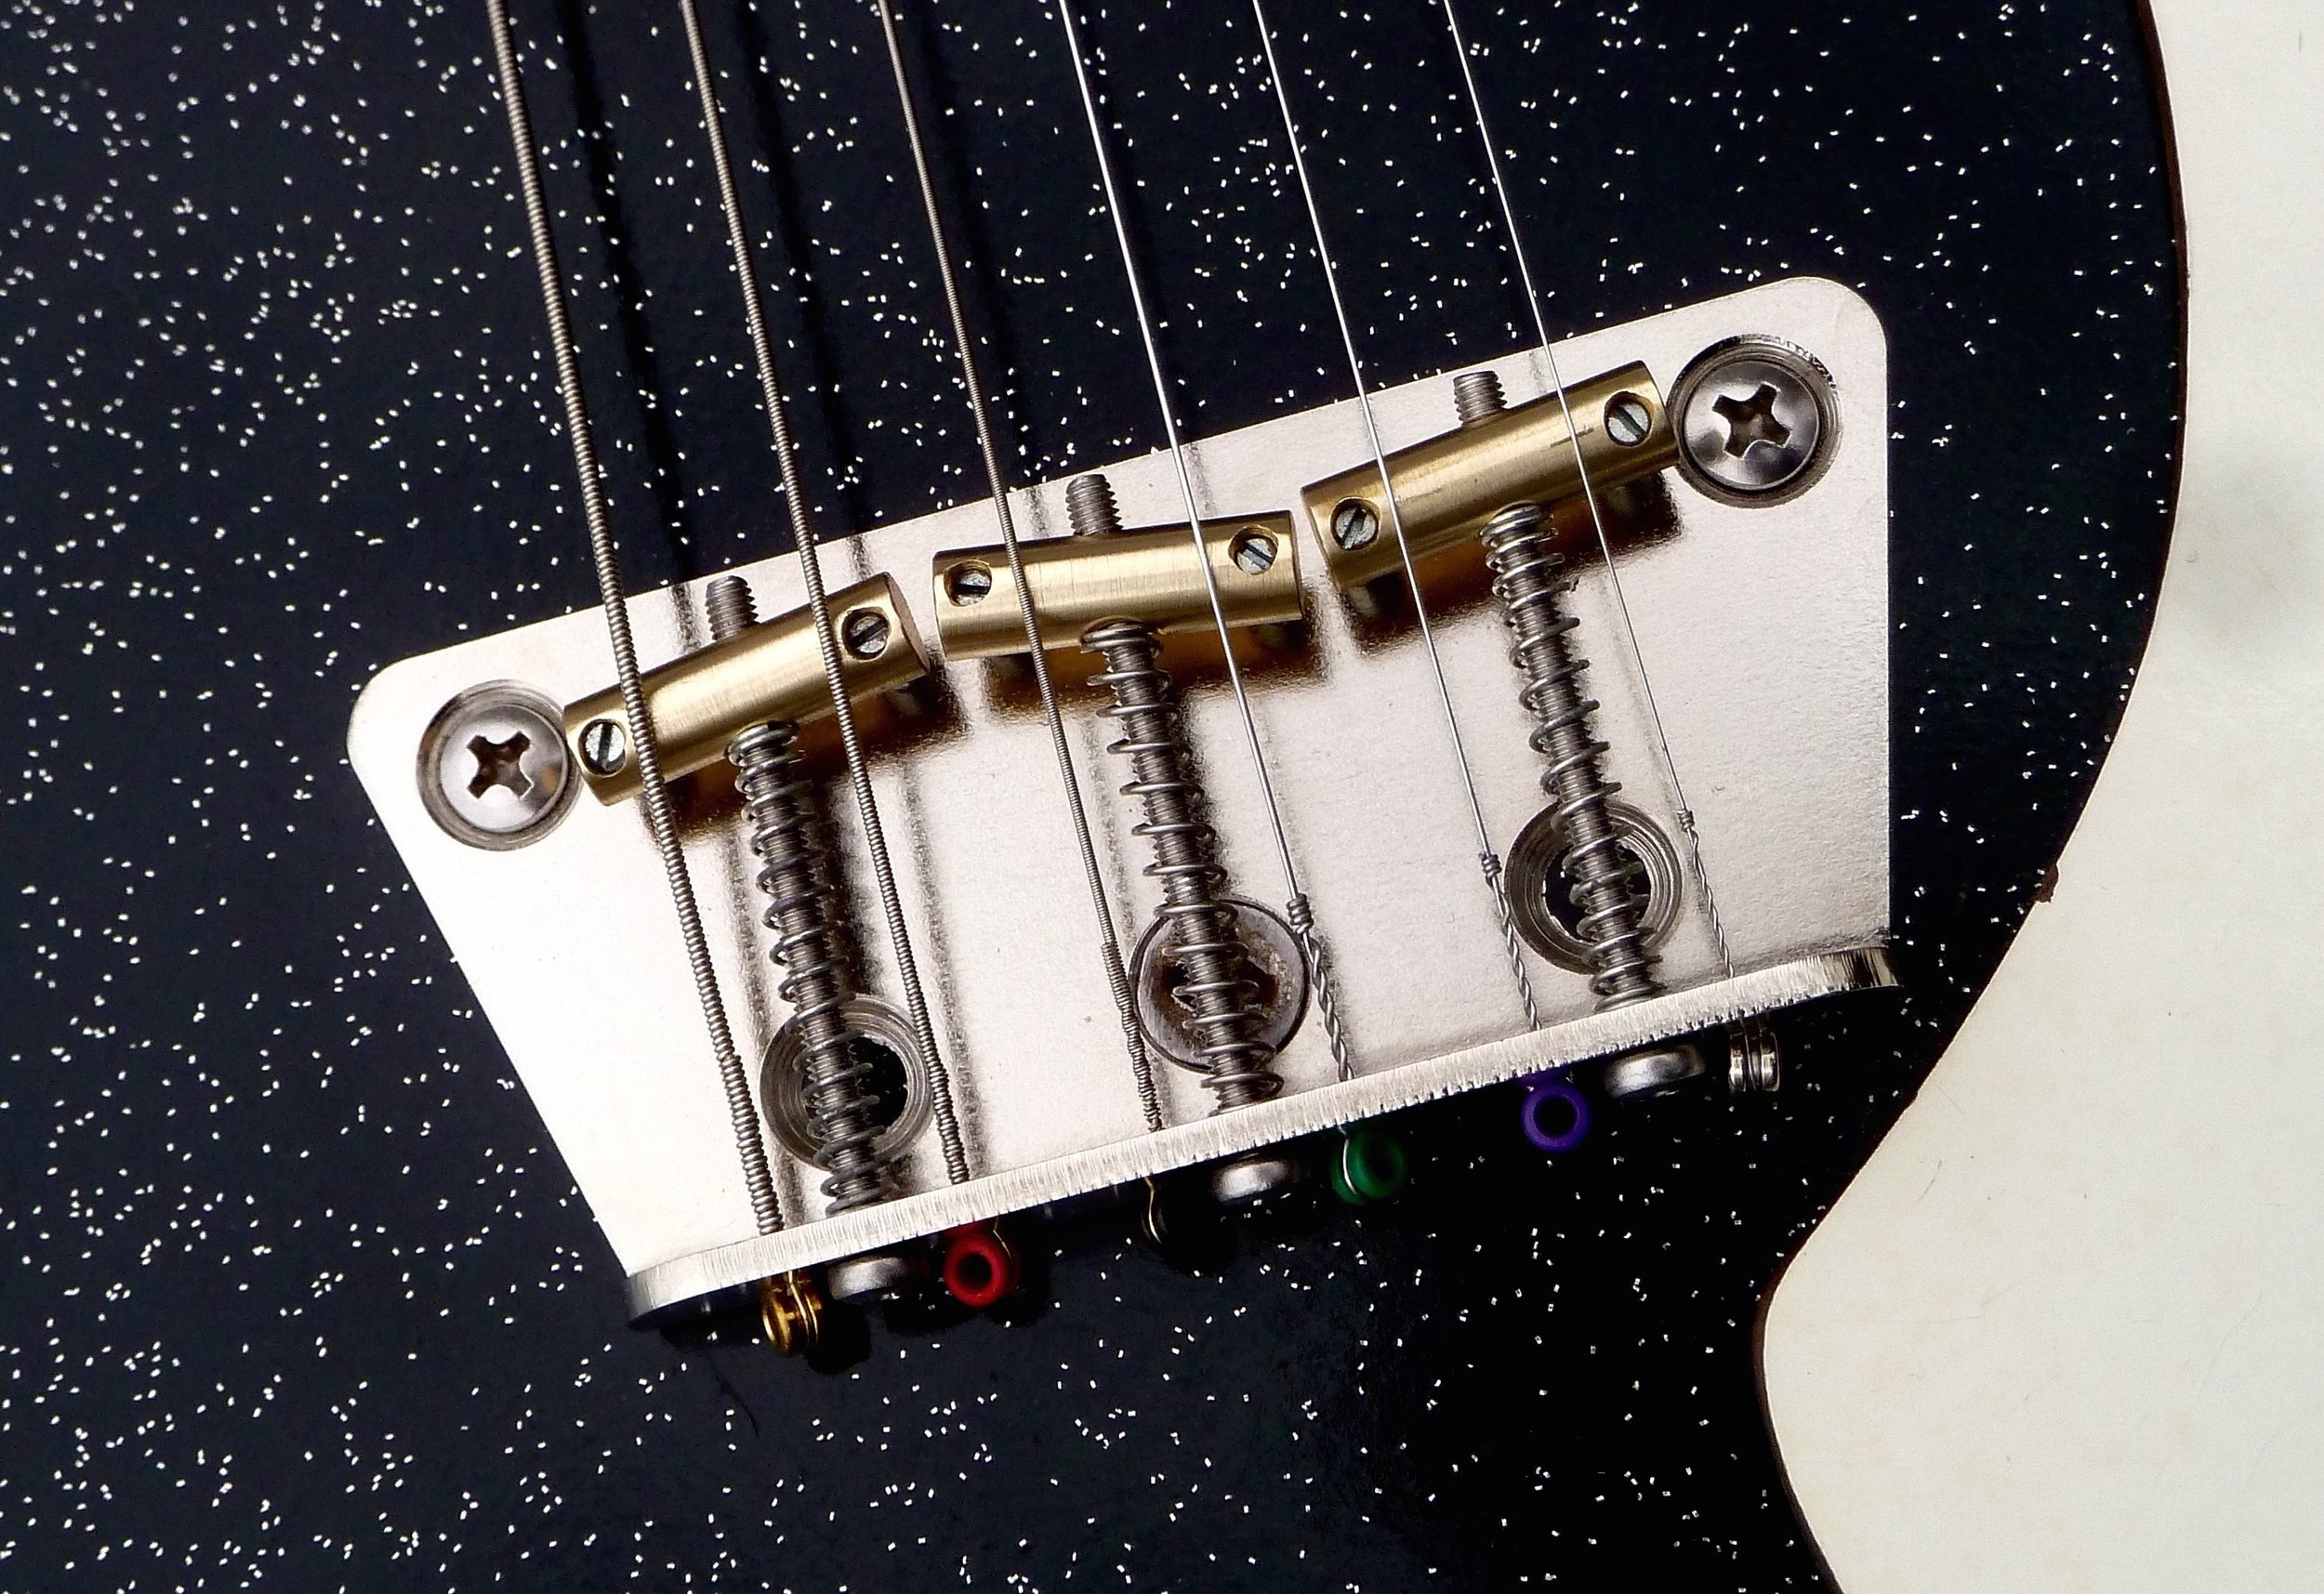 DRB2 Danelectro Silvertone Replacement Bridge - Click here for info and to purchase the Jeff Senn designed DRB2 bridge.